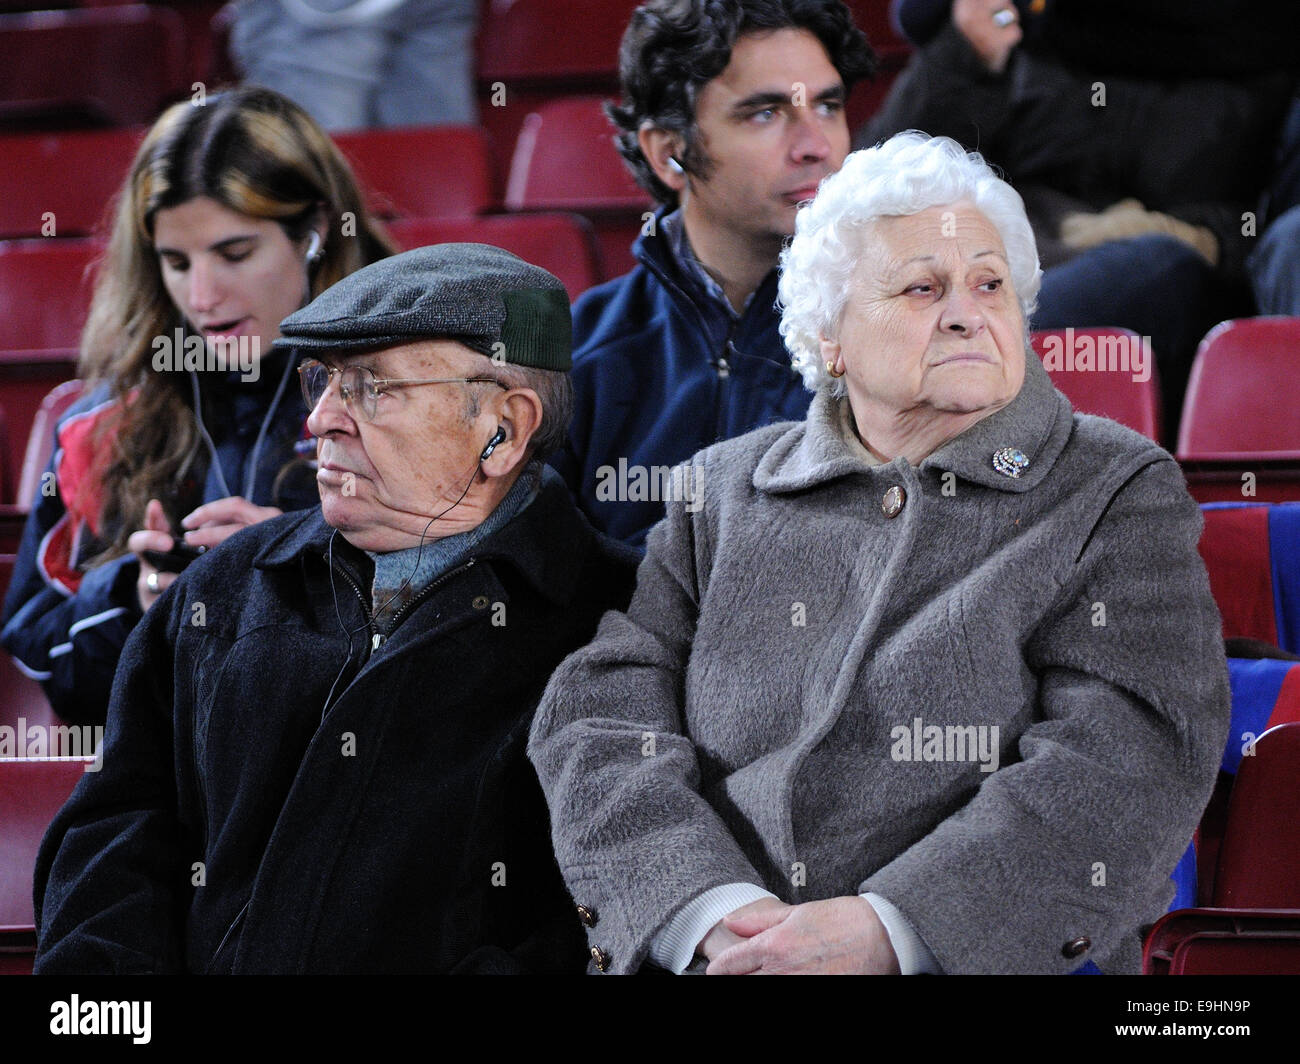 BARCELONA - NOV 10: Two old men watch a football match at the Camp Nou Stadium on the Spanish Cup. - Stock Image